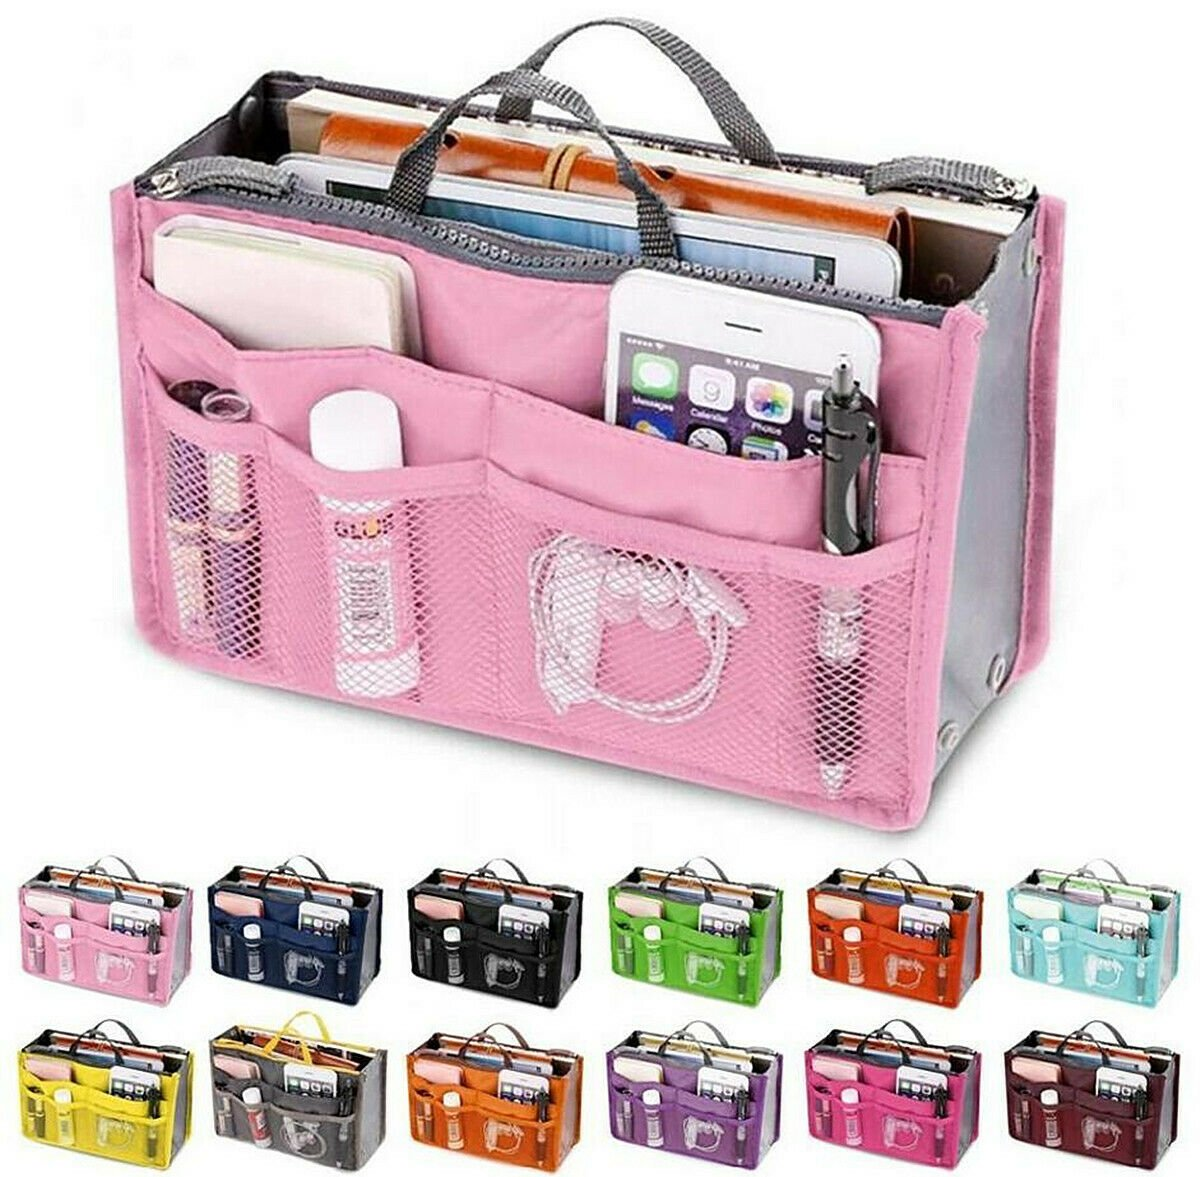 Travel Bag Women Handbag Organizer Large Liner Insert Makeup Purse Acc...